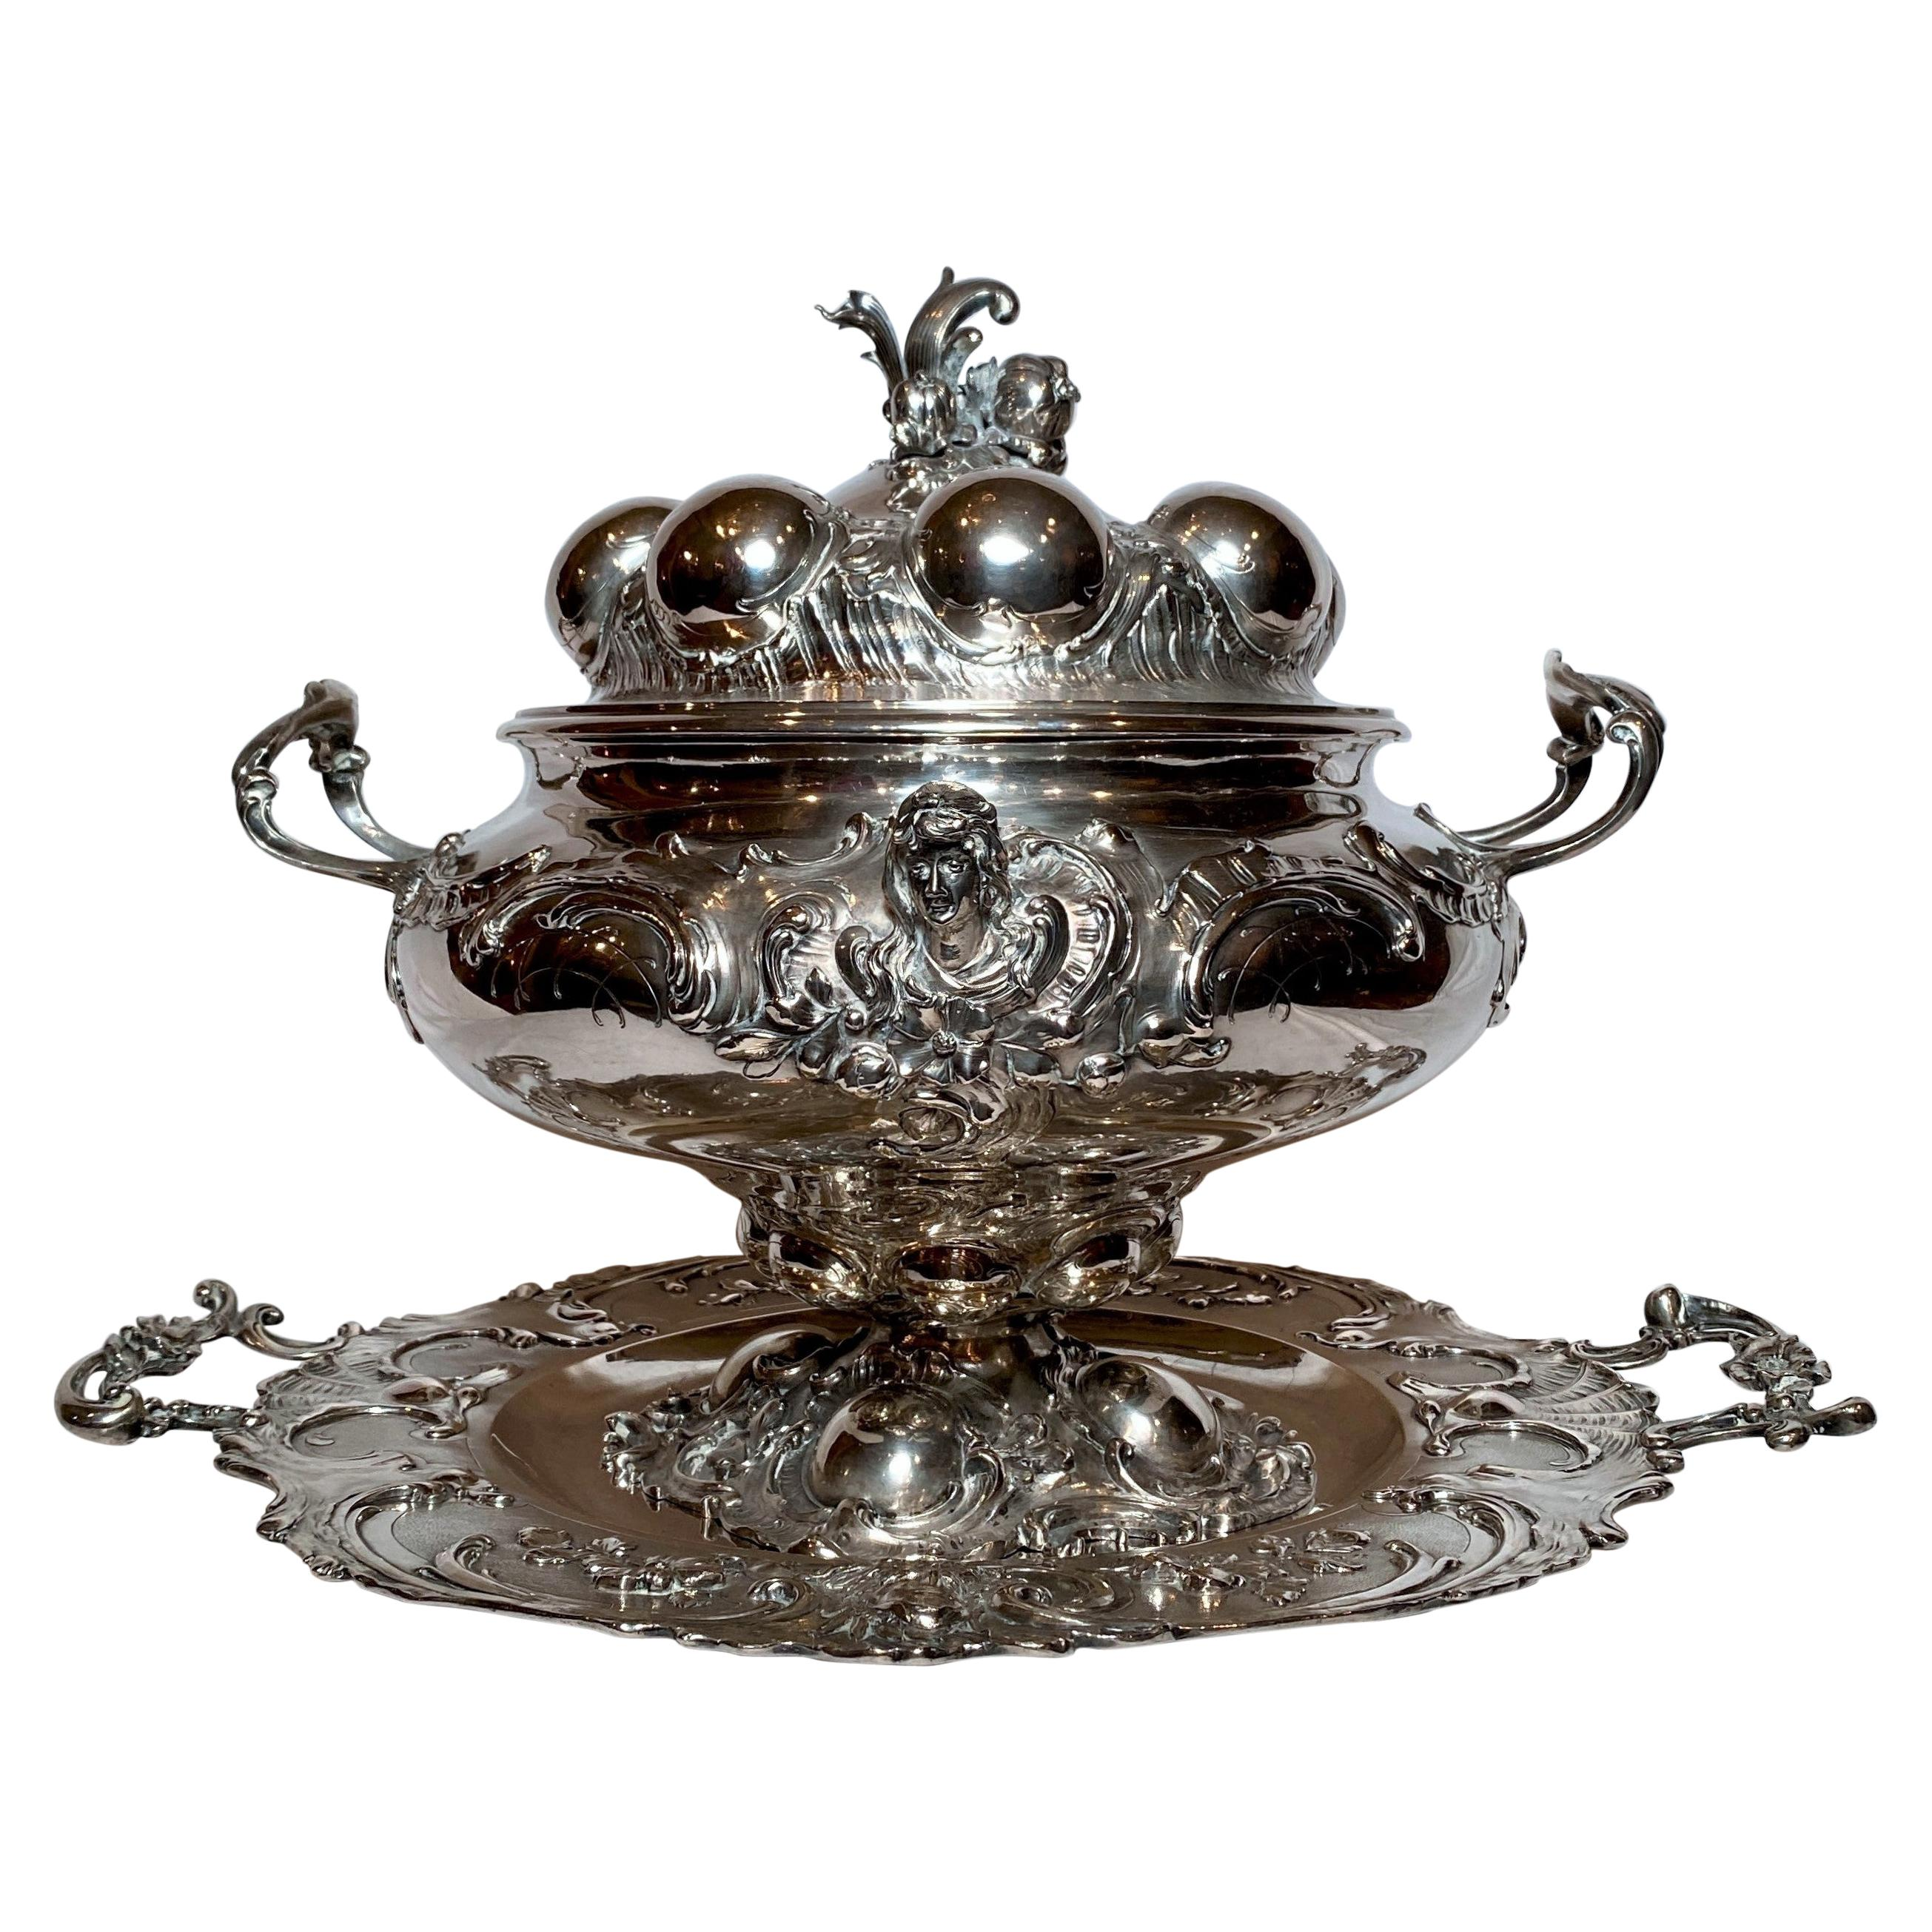 Antique Continental Silver Tureen and Platter, Circa 1880-1890